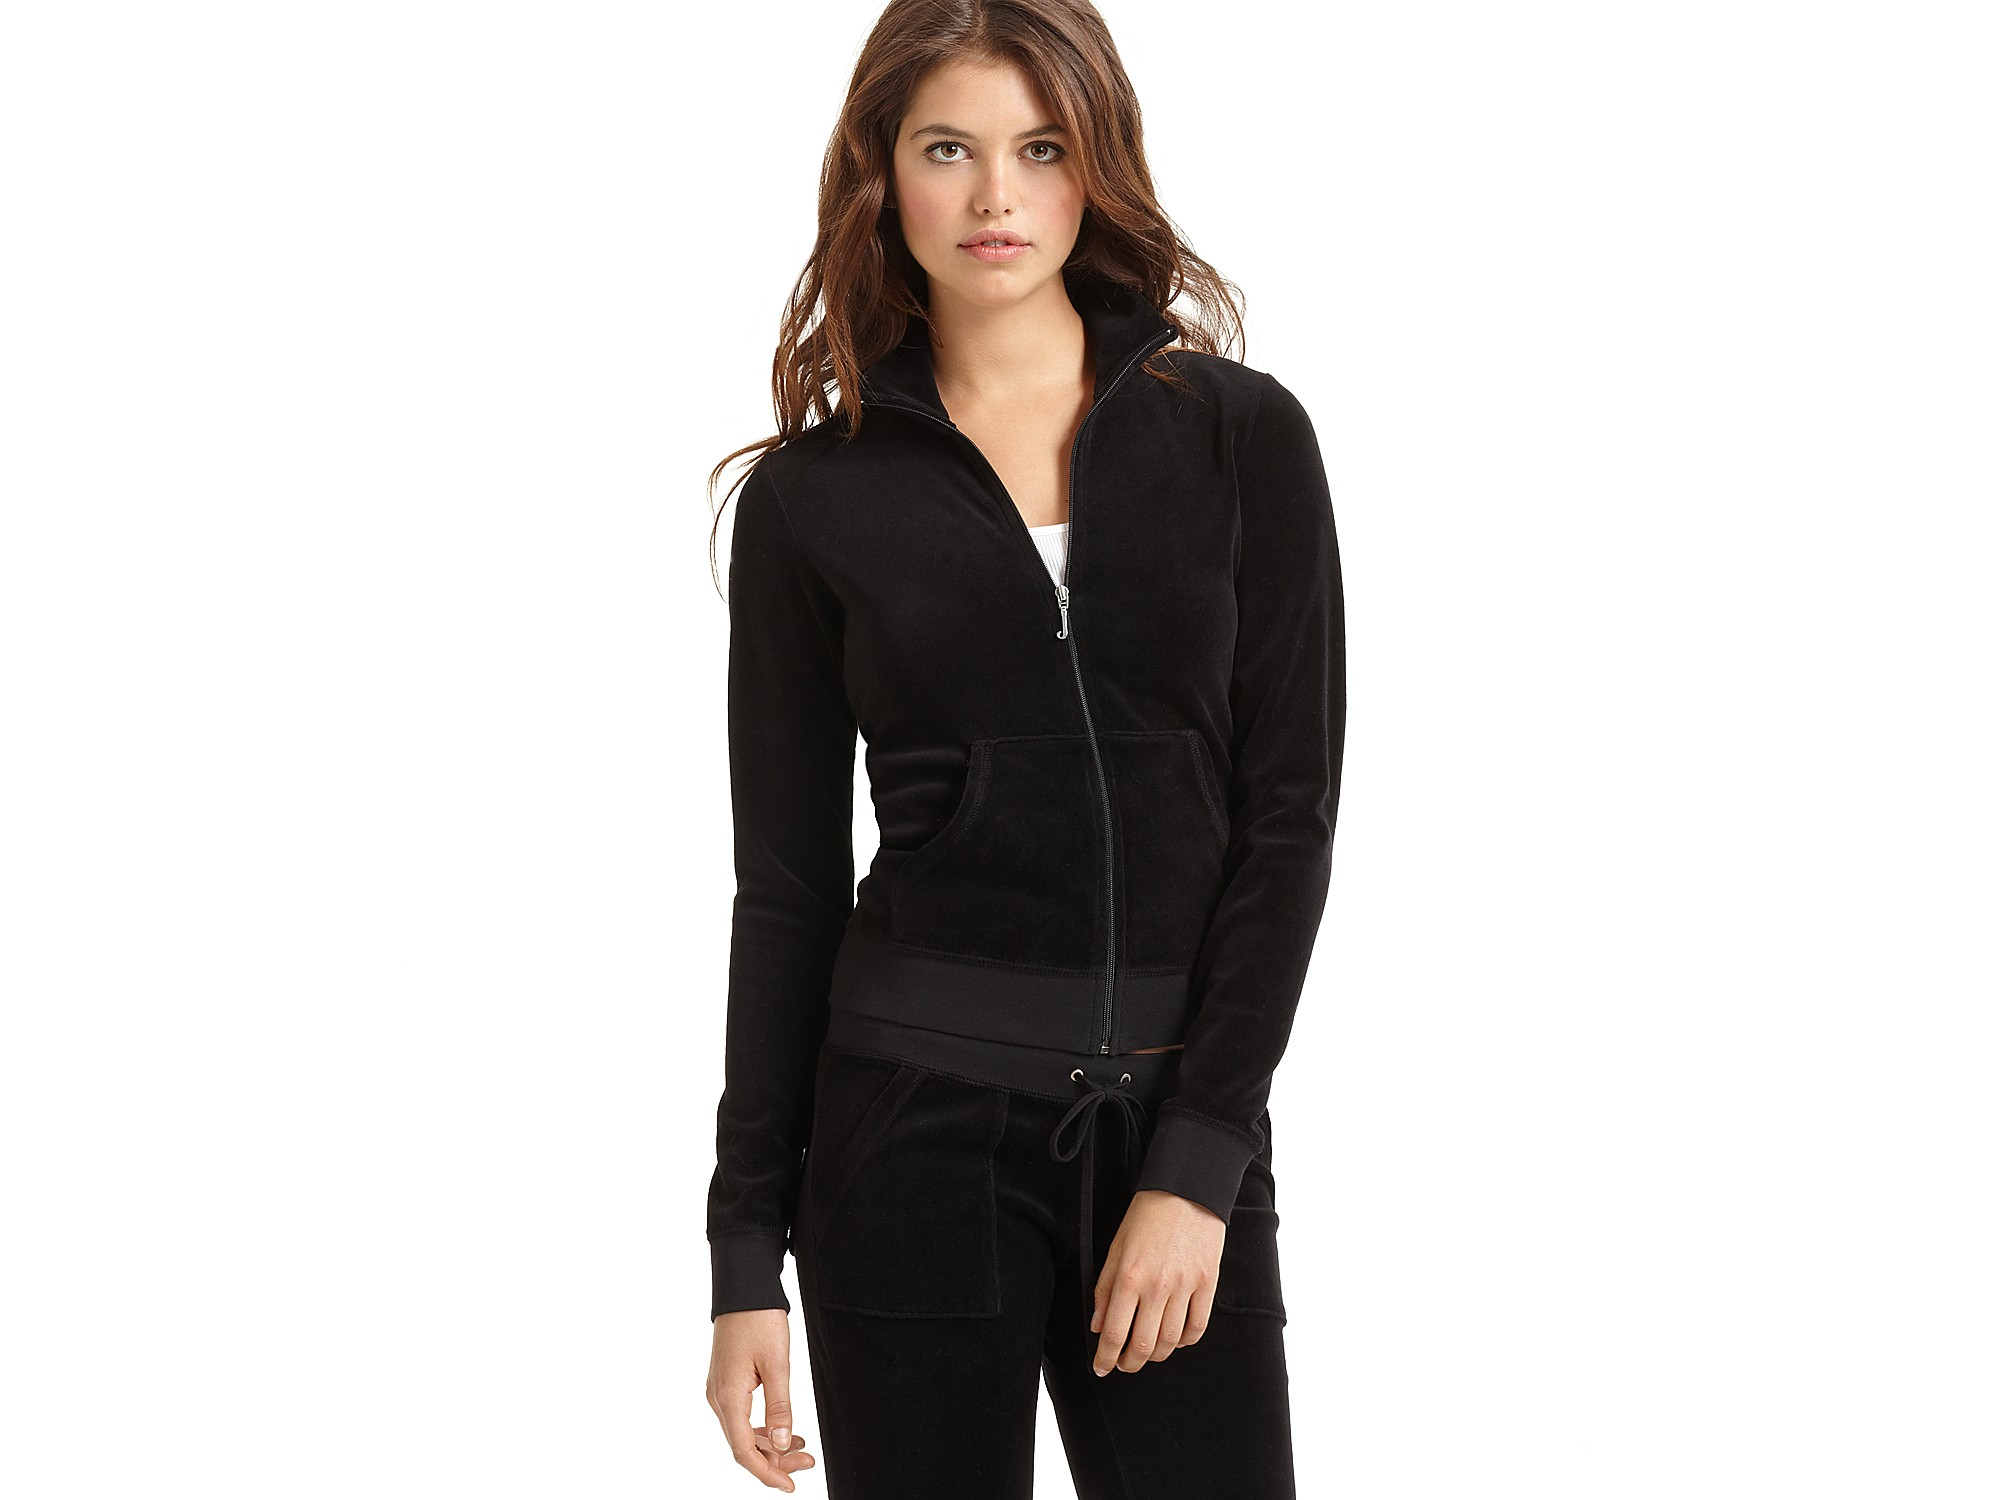 007b8d53d2ce Lyst - Juicy Couture Velour Track Jacket in Black in Black